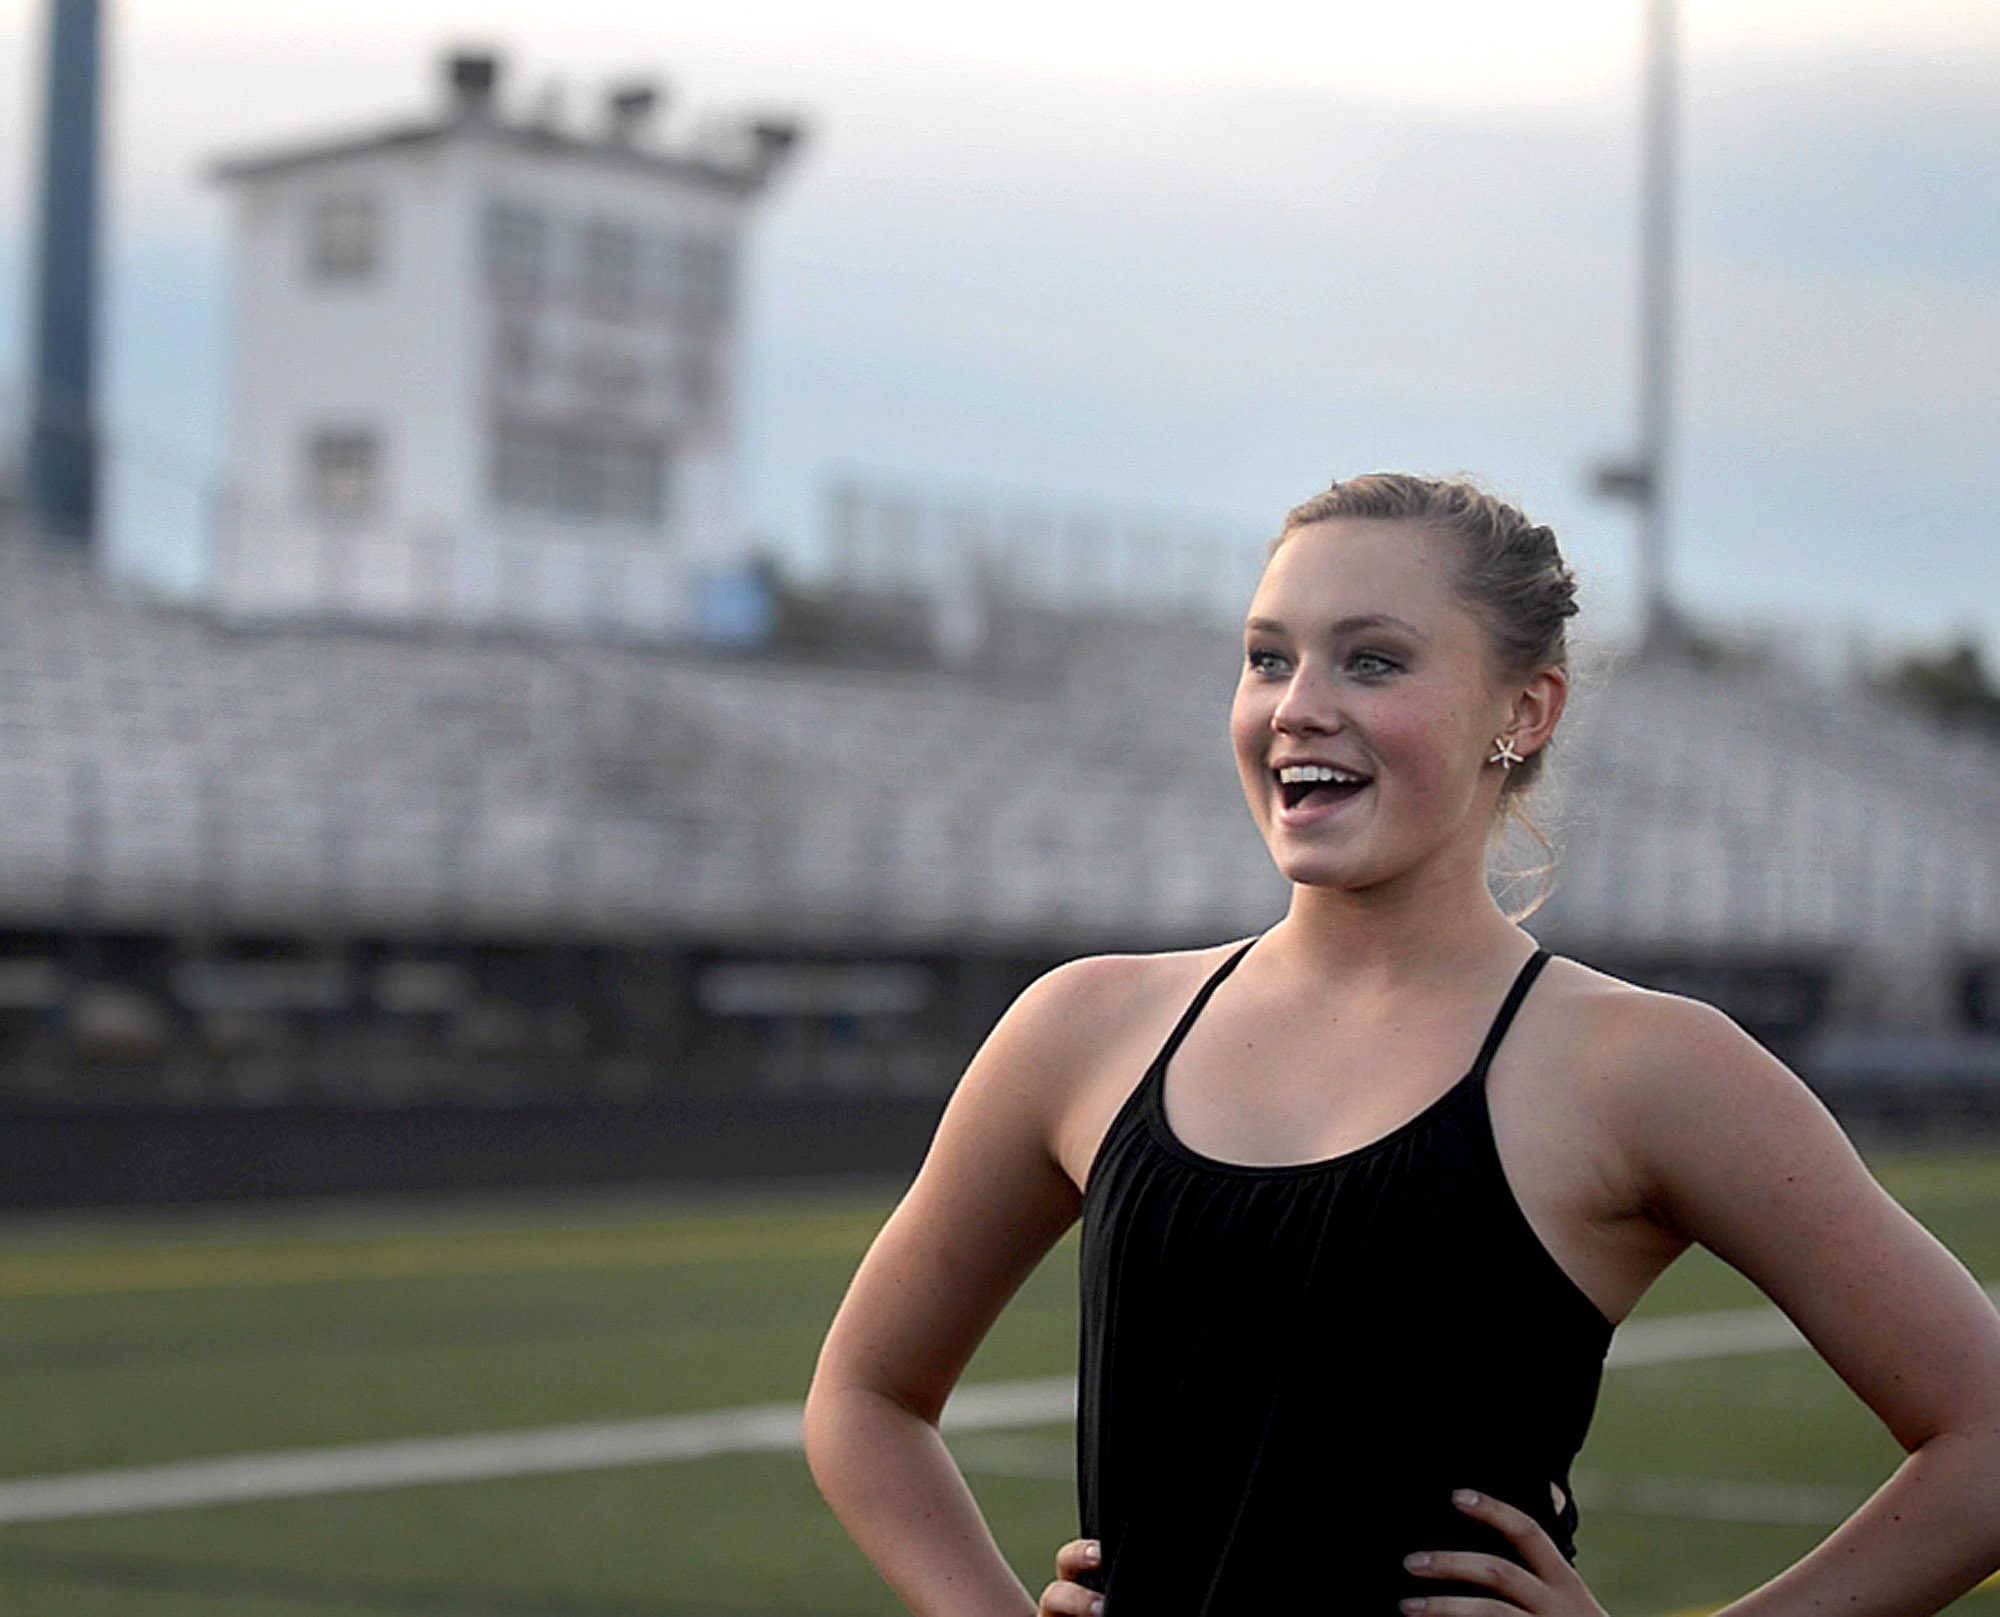 Elk Grove teen aims to be Distinguished Young Woman of America